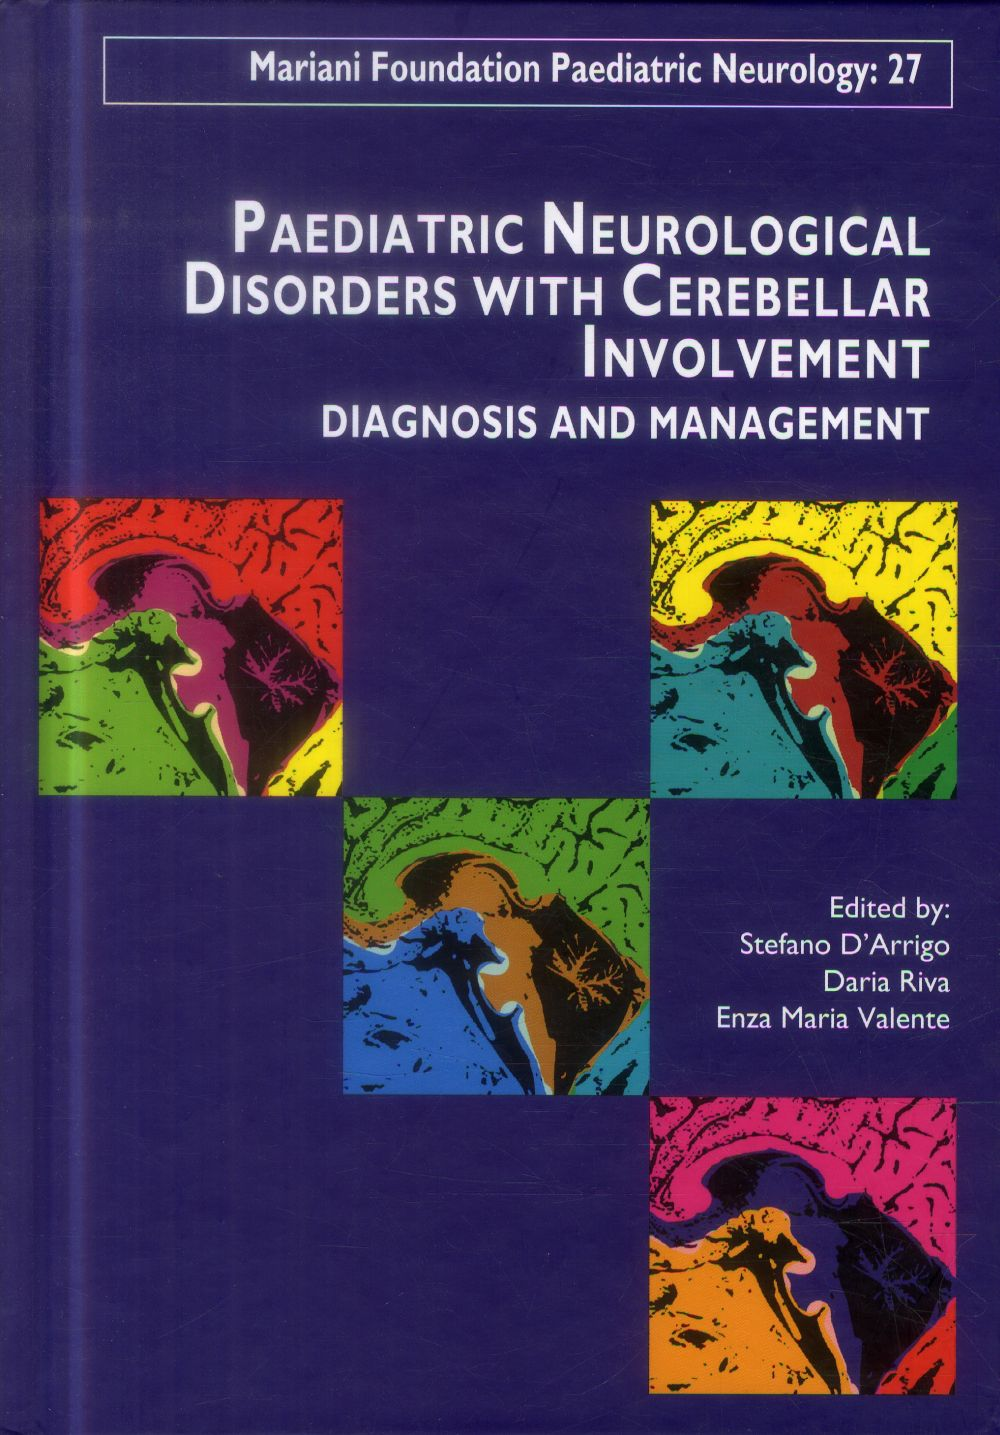 PAEDIATRIC NEUROLOGICAL DISORDERS WITH CEREBELLAR INVOLVEMENT - DIAGNOSIS AND MANAGEMENT.